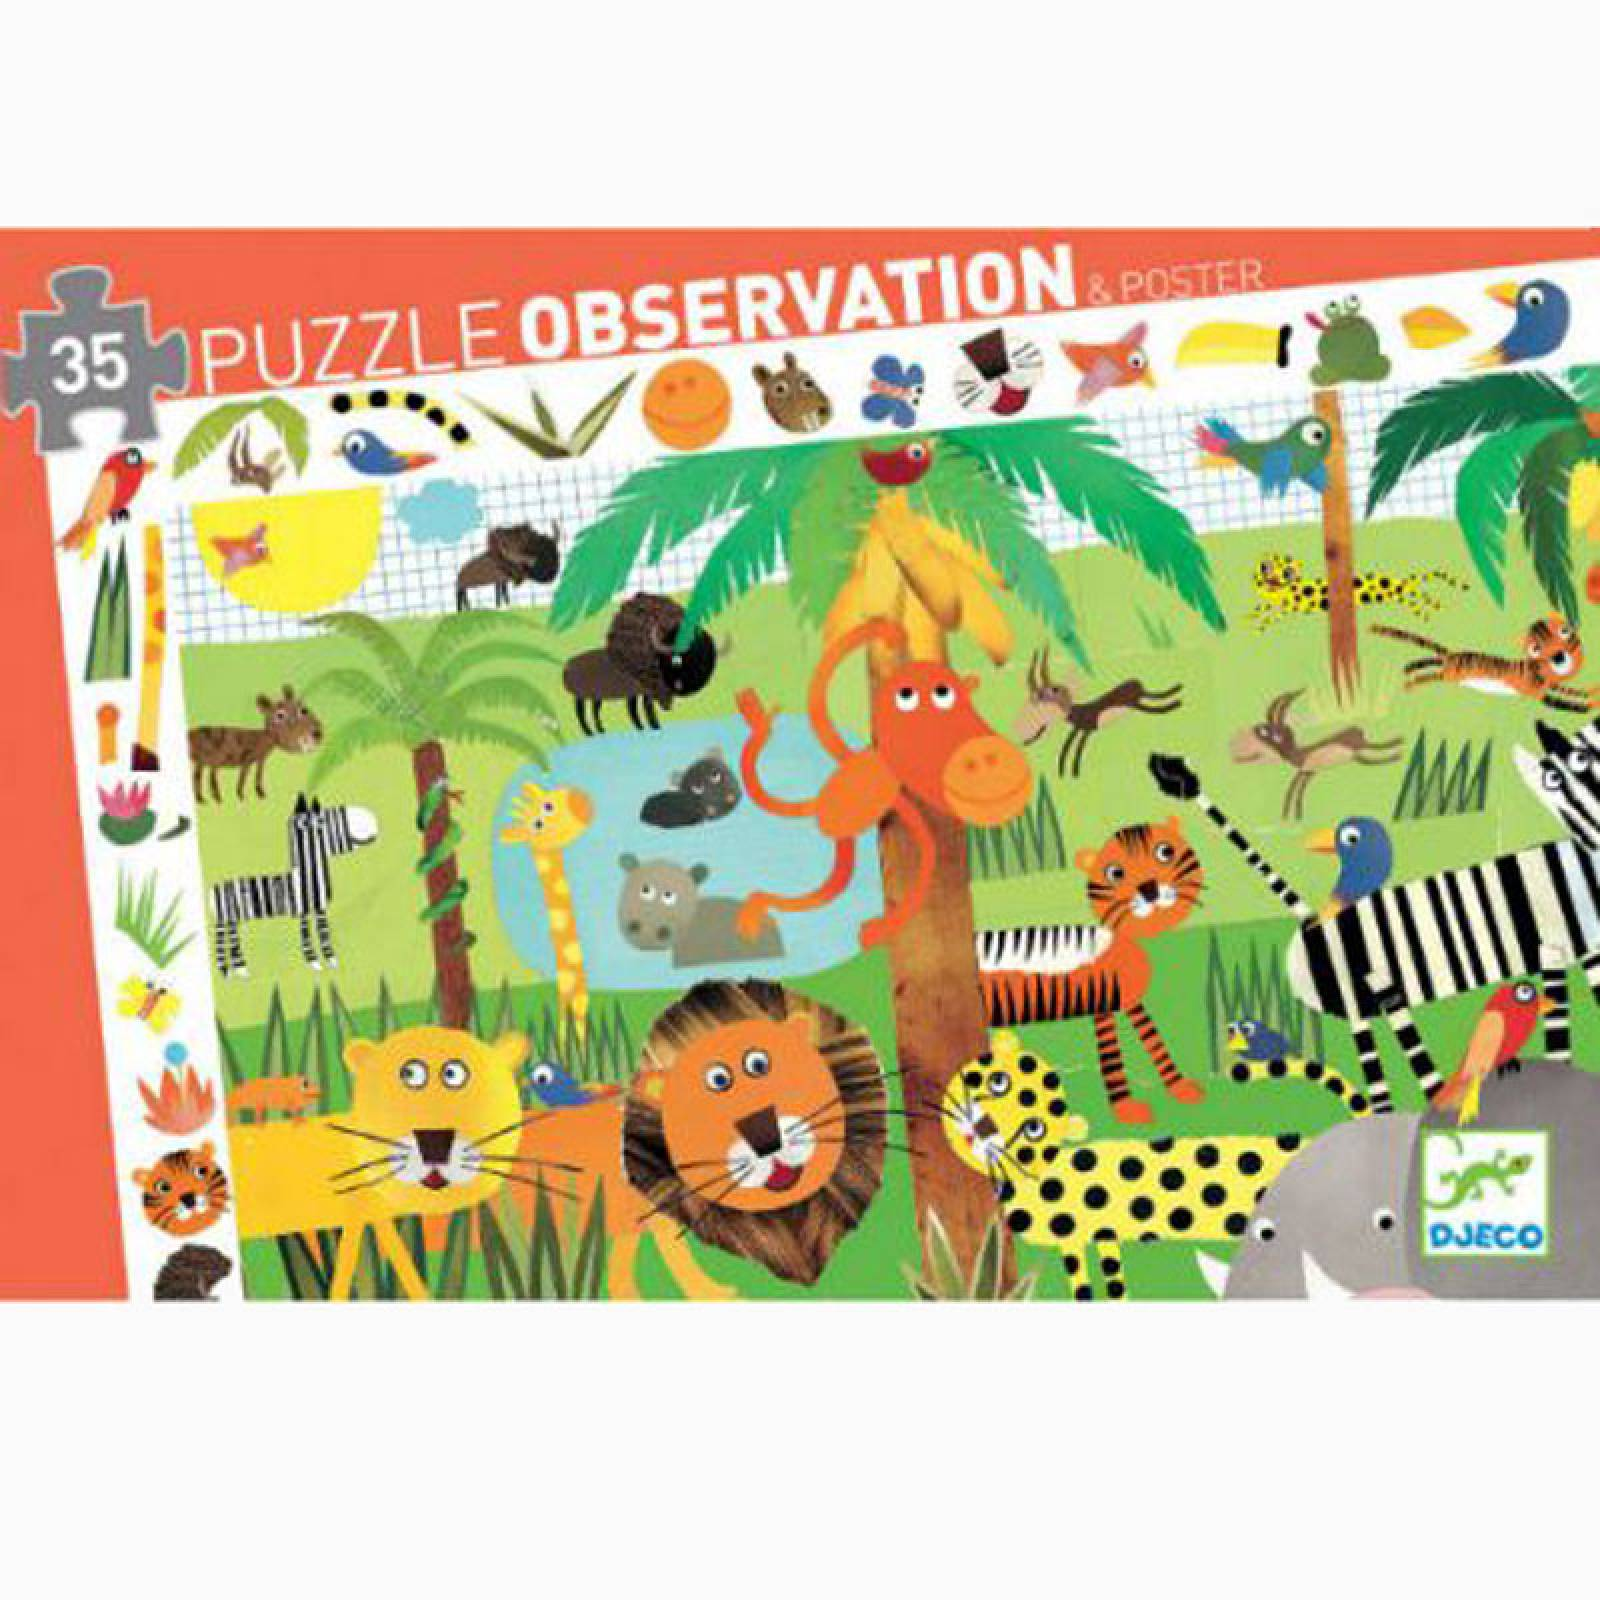 Jungle Observation Jigsaw Puzzle 35 Piece By Djeco